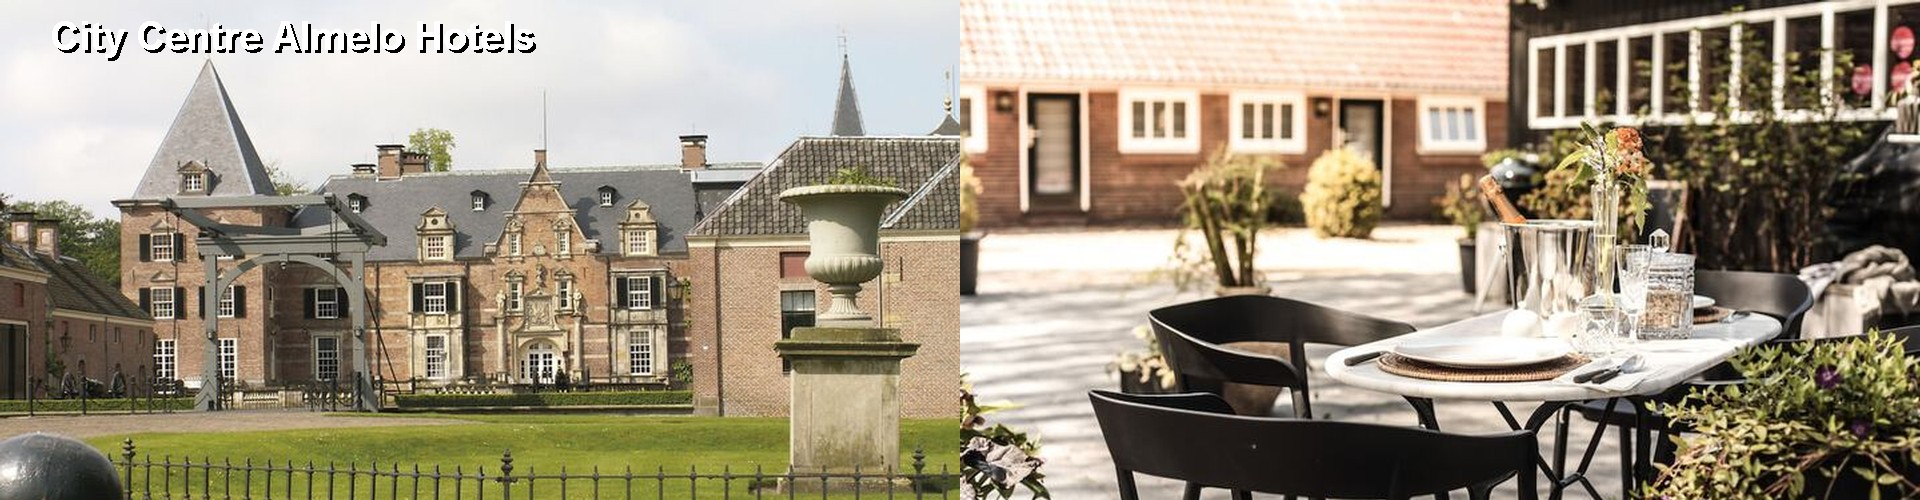 3 Best Hotels near City Centre Almelo